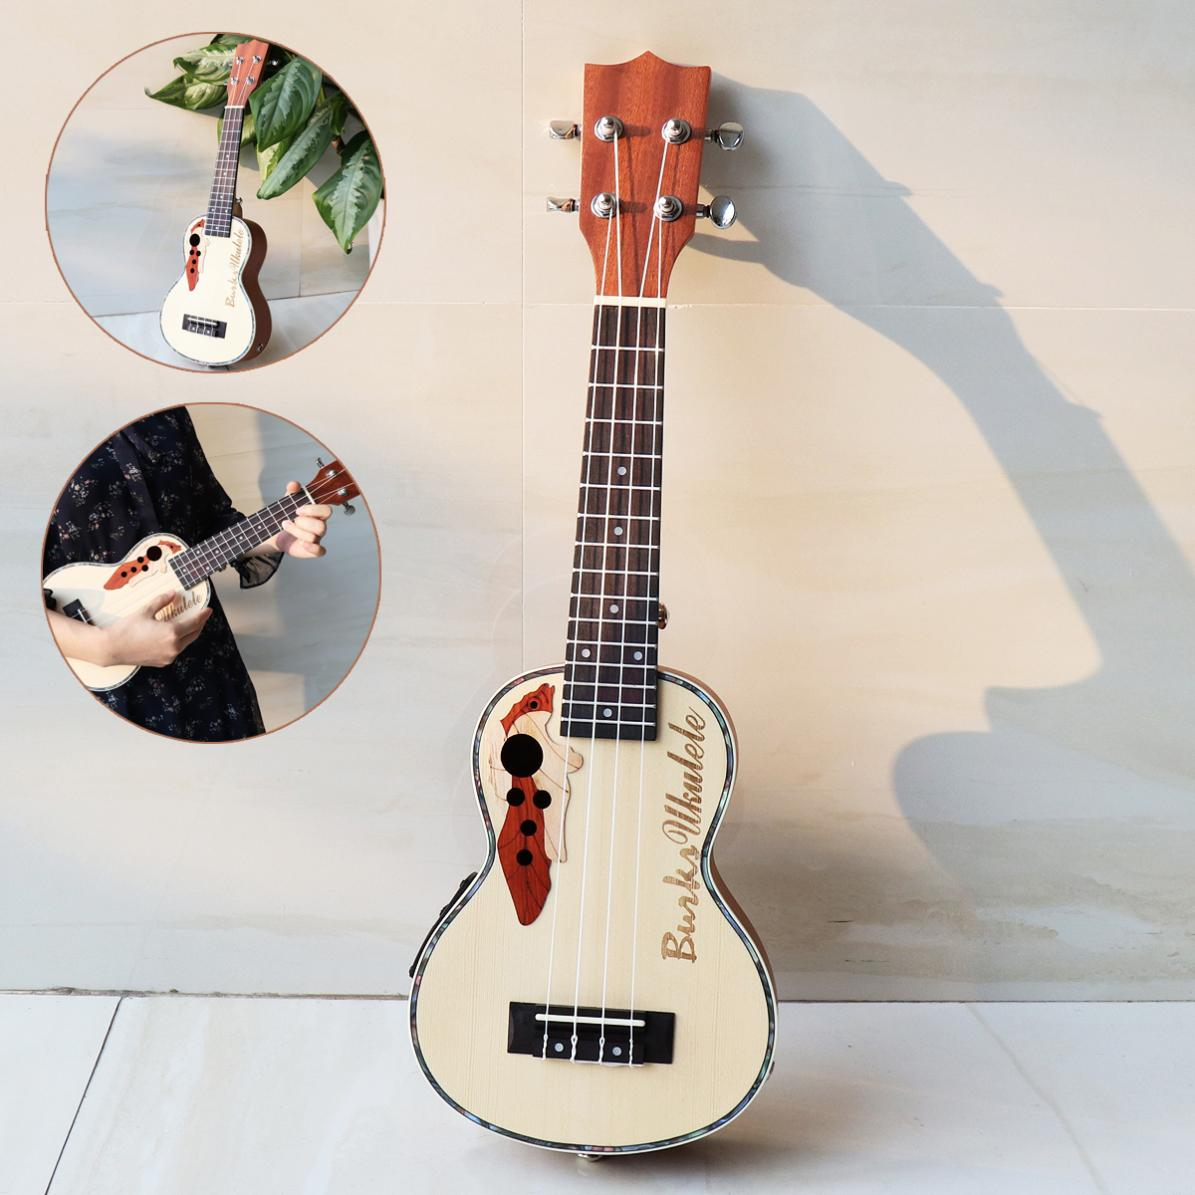 21 Inch Spruce EQ Soprano Ukelele 15 Fret Electroacoustic 4 Strings Guitar Musical Instrument with Built